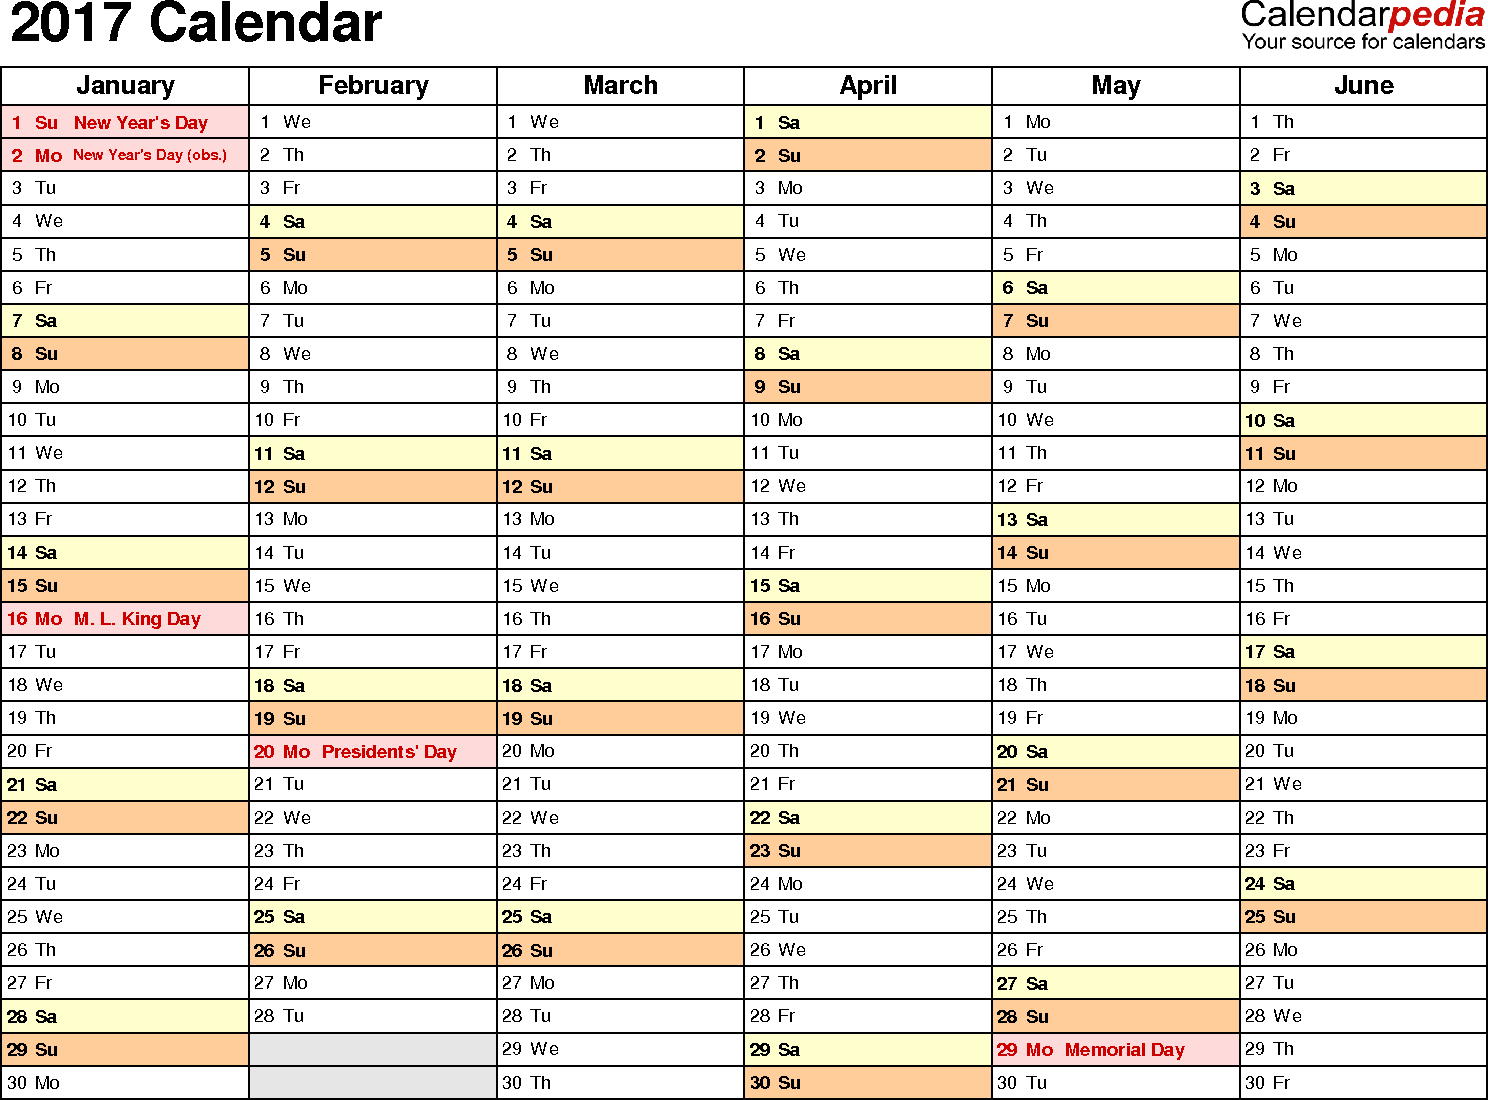 Ediblewildsus  Splendid  Calendar  Download  Free Printable Excel Templates Xls With Fetching Template   Calendar For Excel Months Horizontally  Pages Landscape Orientation With Archaic Excel Conditional Formatting Range Also If Then Else Excel Vba In Addition How Do You Make A Formula In Excel And Logarithmic Chart Excel As Well As Brute Force Excel Password Additionally Excel Vba Do Until Loop From Calendarpediacom With Ediblewildsus  Fetching  Calendar  Download  Free Printable Excel Templates Xls With Archaic Template   Calendar For Excel Months Horizontally  Pages Landscape Orientation And Splendid Excel Conditional Formatting Range Also If Then Else Excel Vba In Addition How Do You Make A Formula In Excel From Calendarpediacom